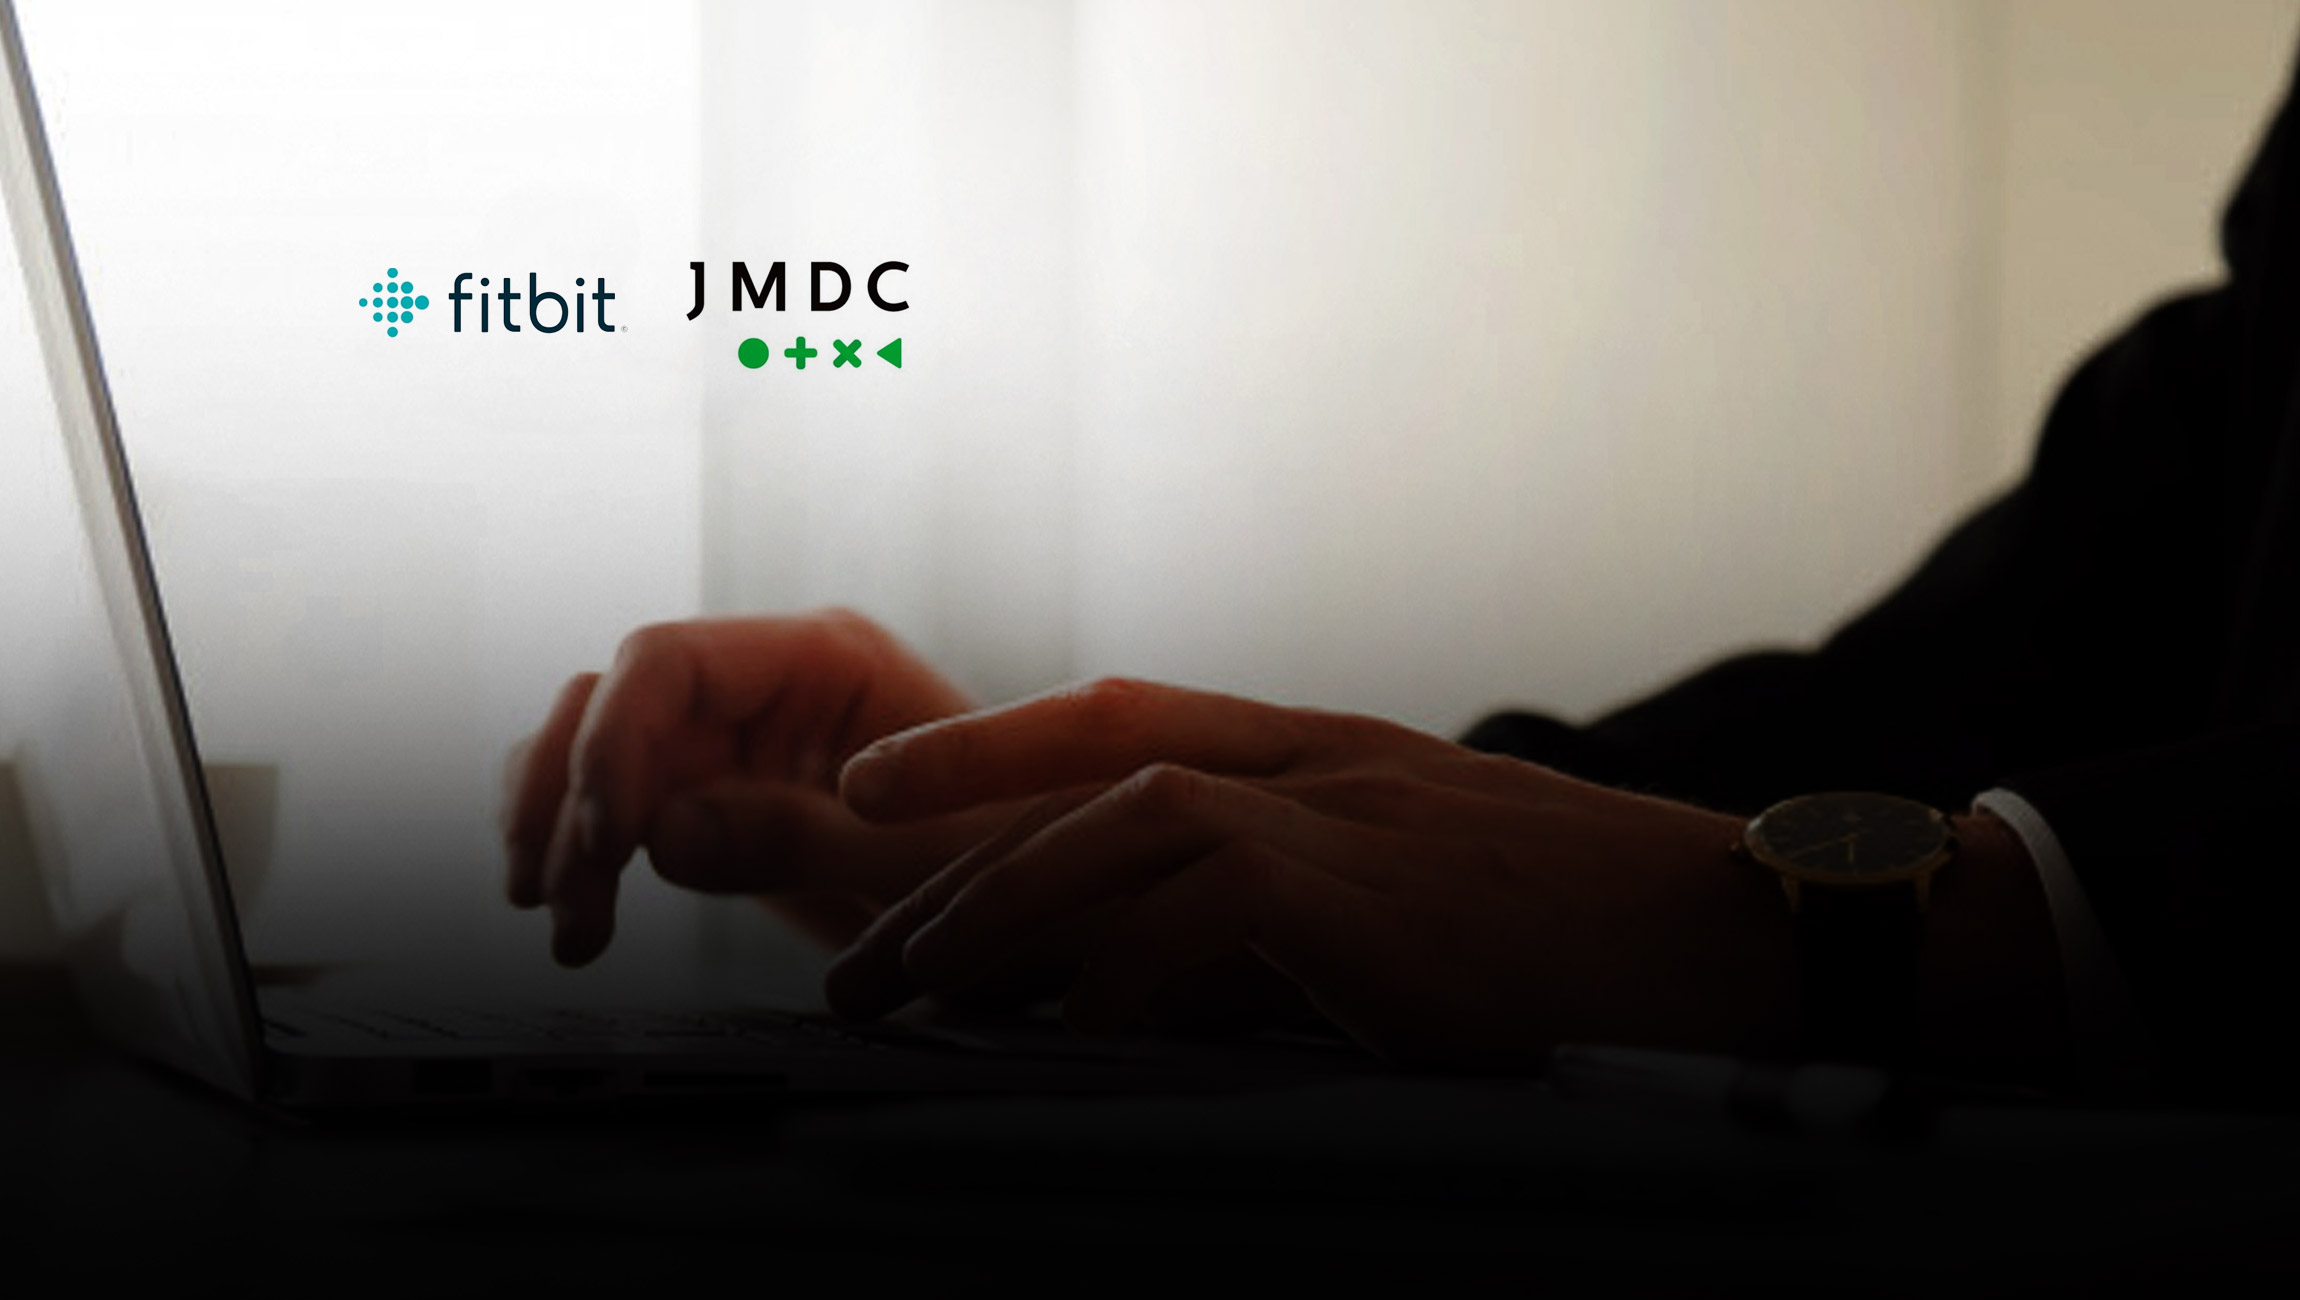 Fitbit and JMDC Sign Agreement to Appoint JMDC as Exclusive Distributor of Fitbit Premium for Enterprise Customers in Japan